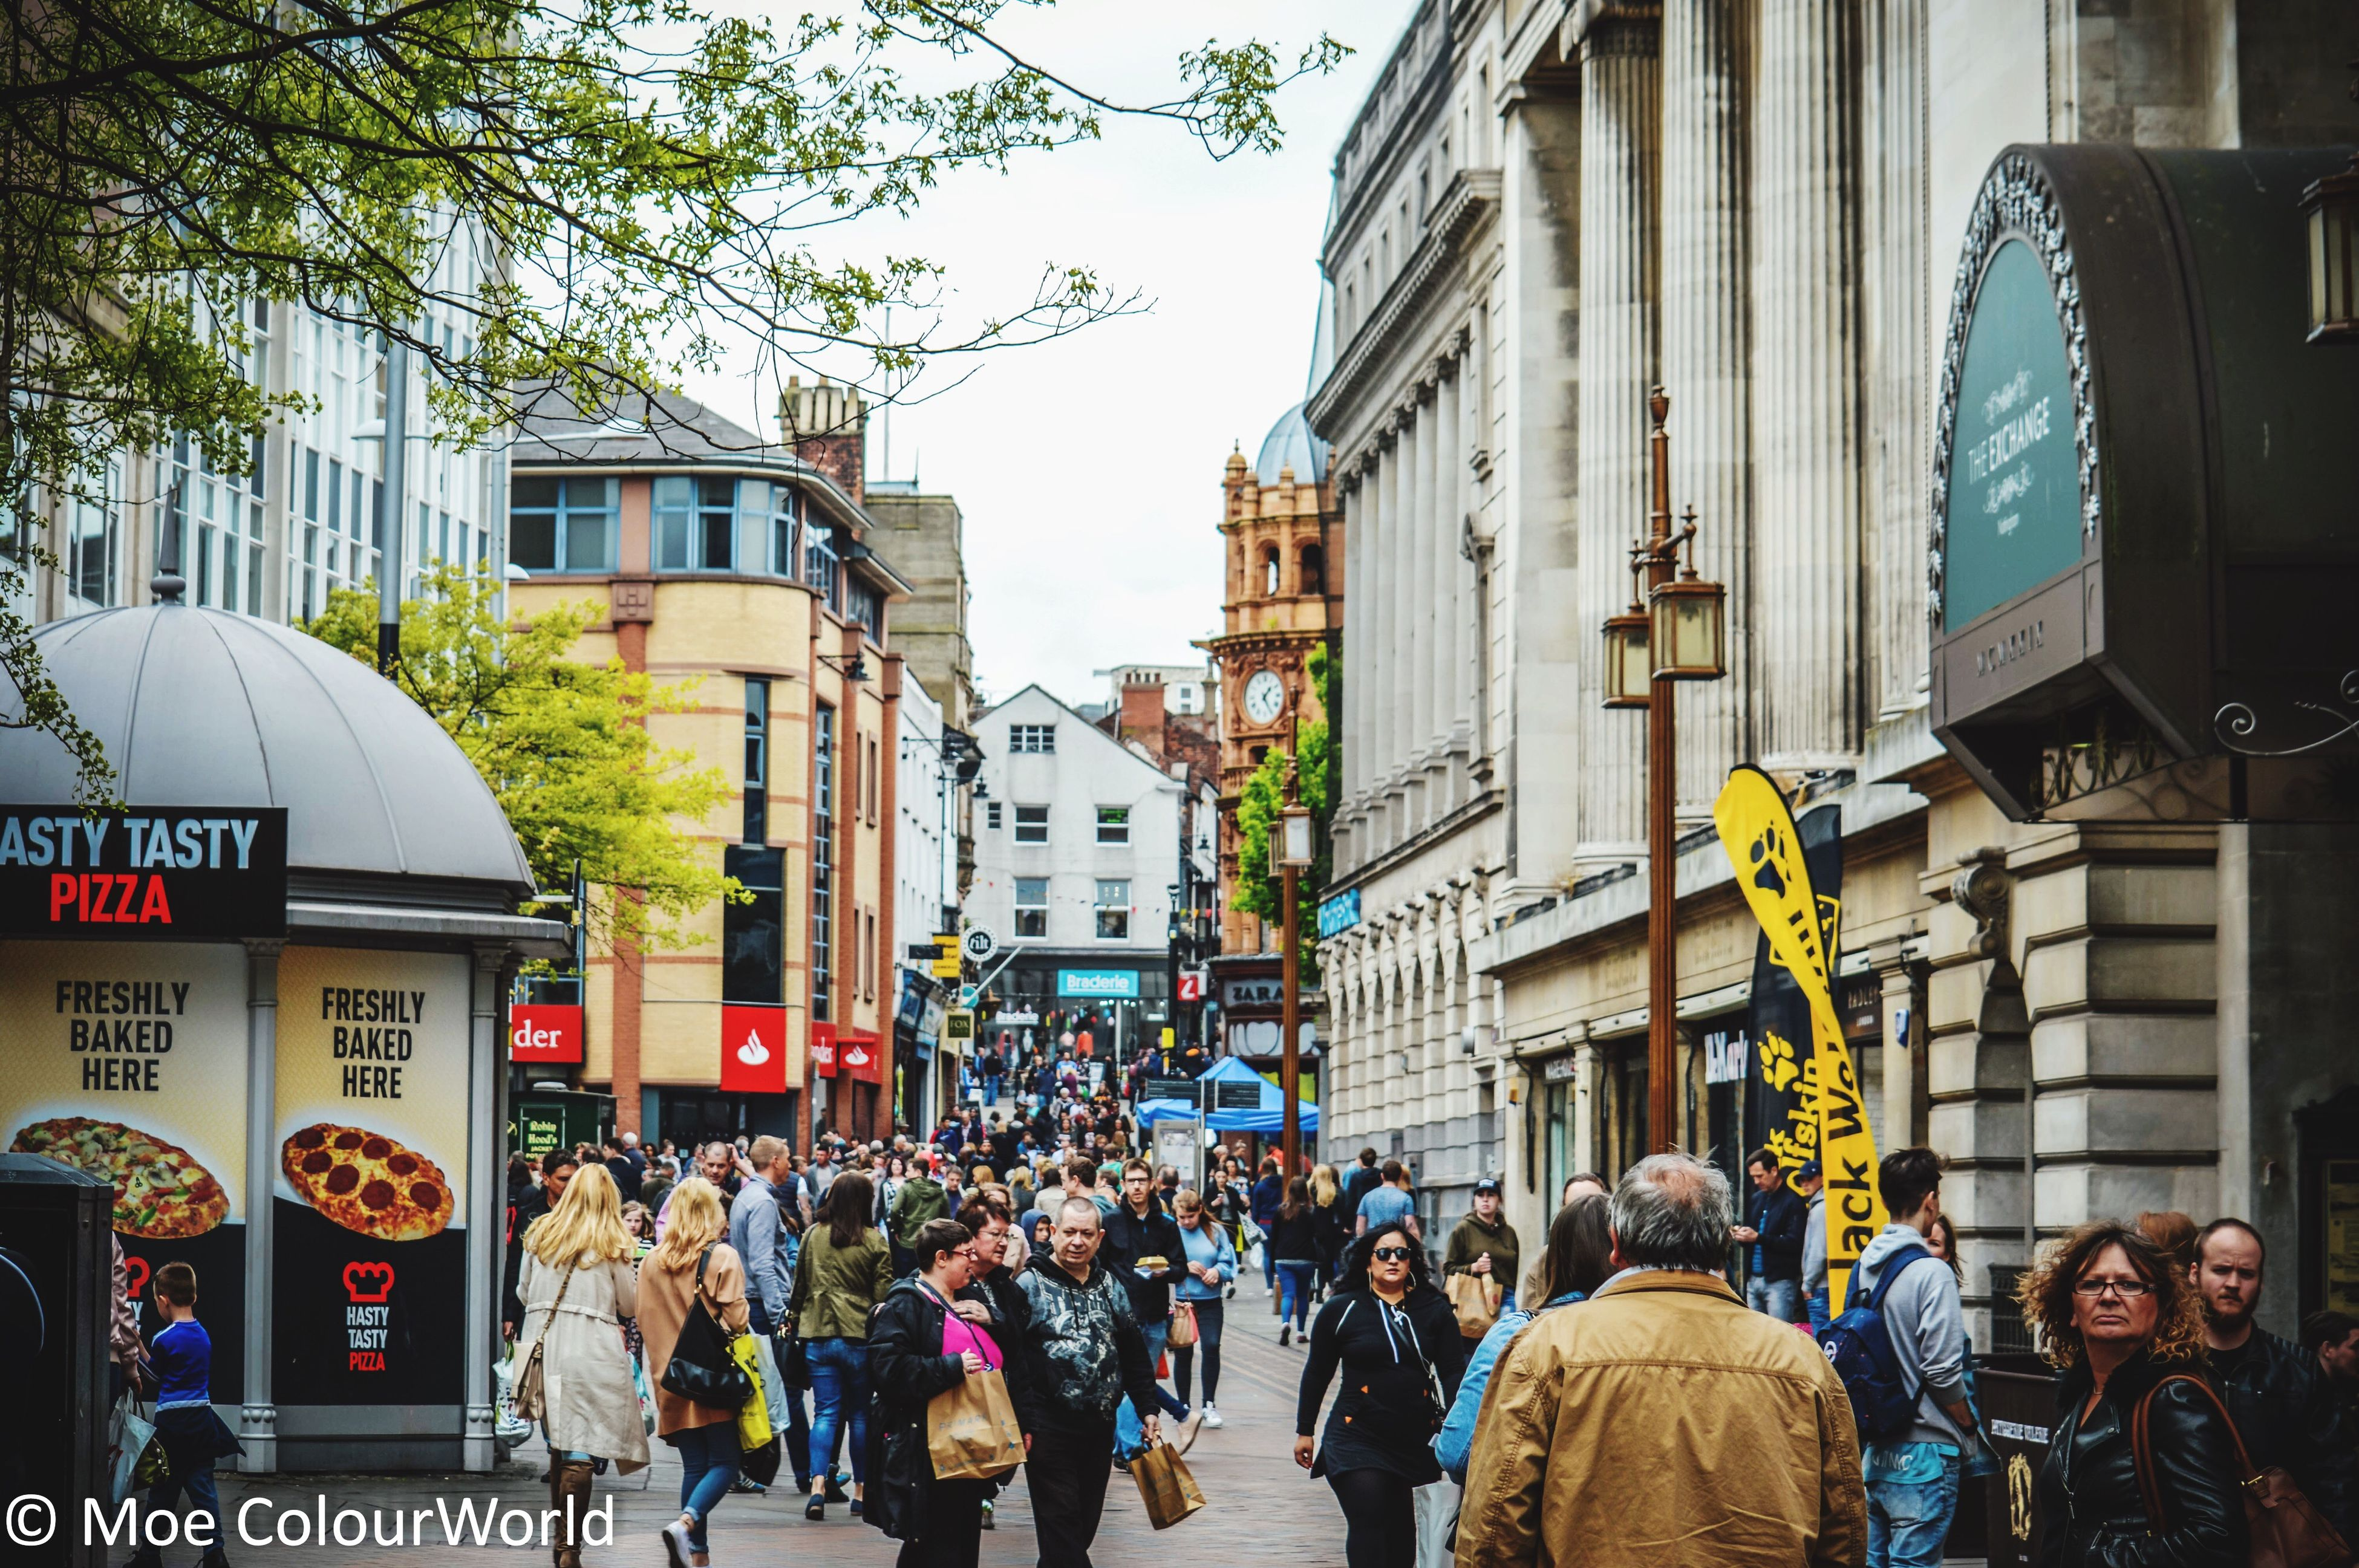 building exterior, architecture, built structure, large group of people, city, real people, city life, day, street, outdoors, men, women, crowd, people